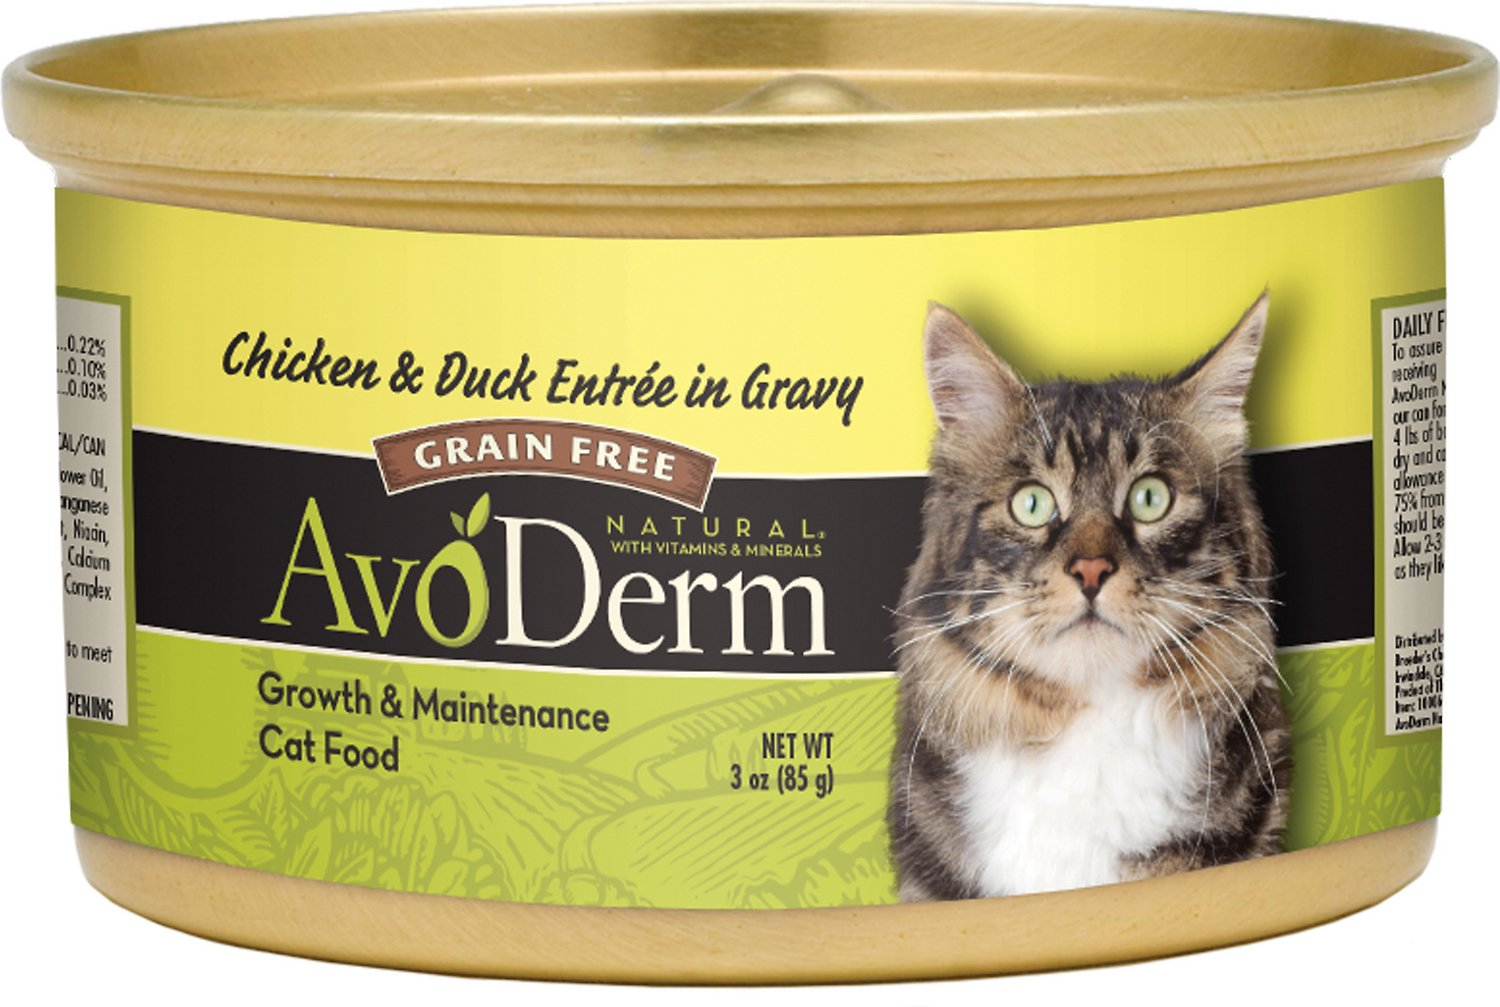 AvoDerm Natural Grain-Free Chicken & Duck Entree in Gravy Canned Cat Food, 3-oz